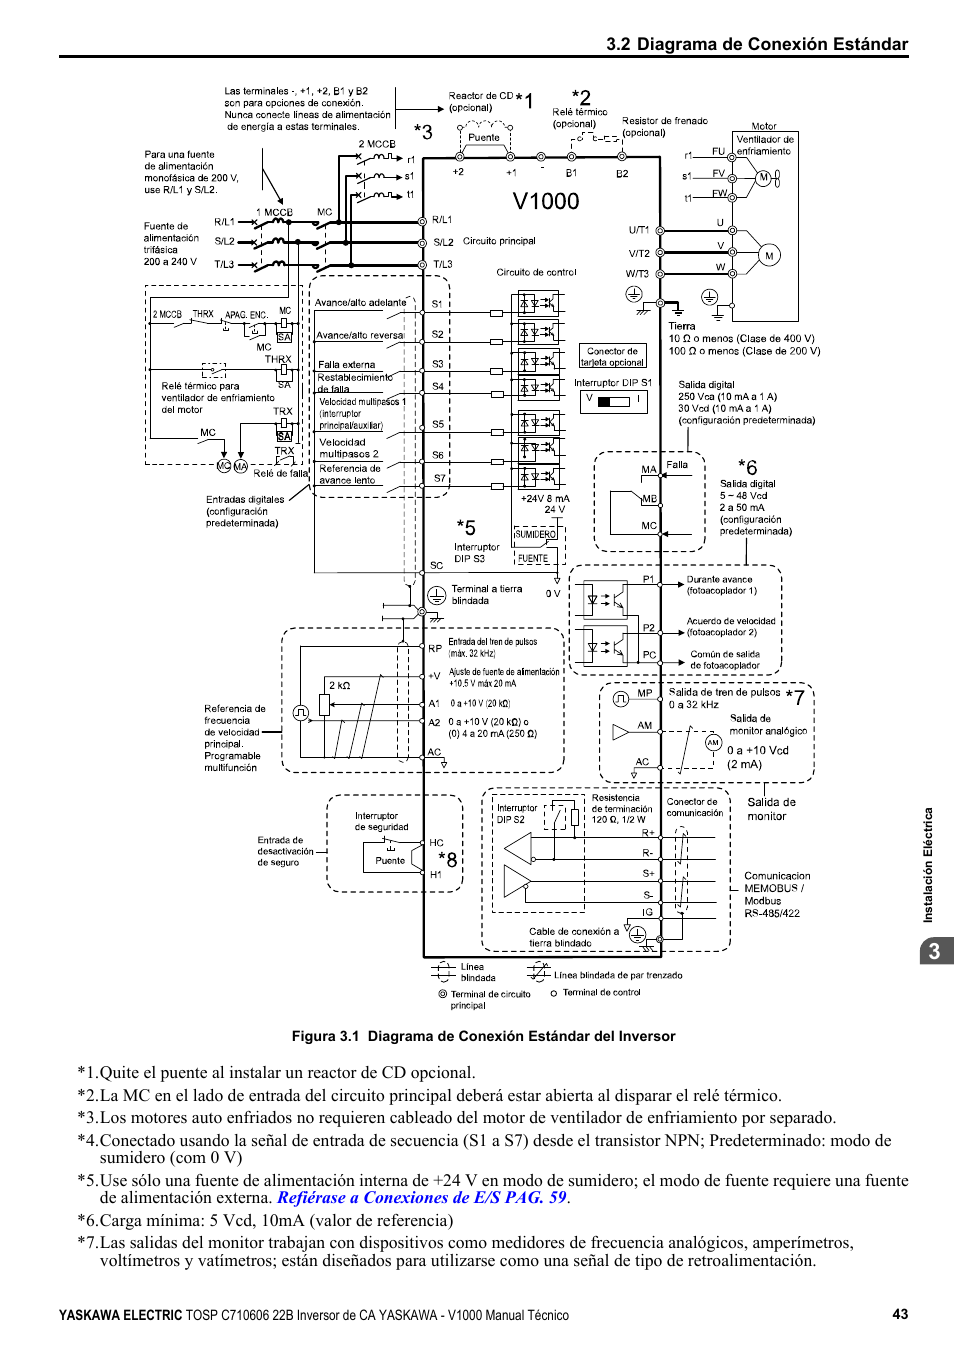 Luxury yaskawa v1000 wiring diagram ideas wiring schematics and yaskawa v1000 wiring diagram best wiring diagram image 2018 asfbconference2016 Image collections